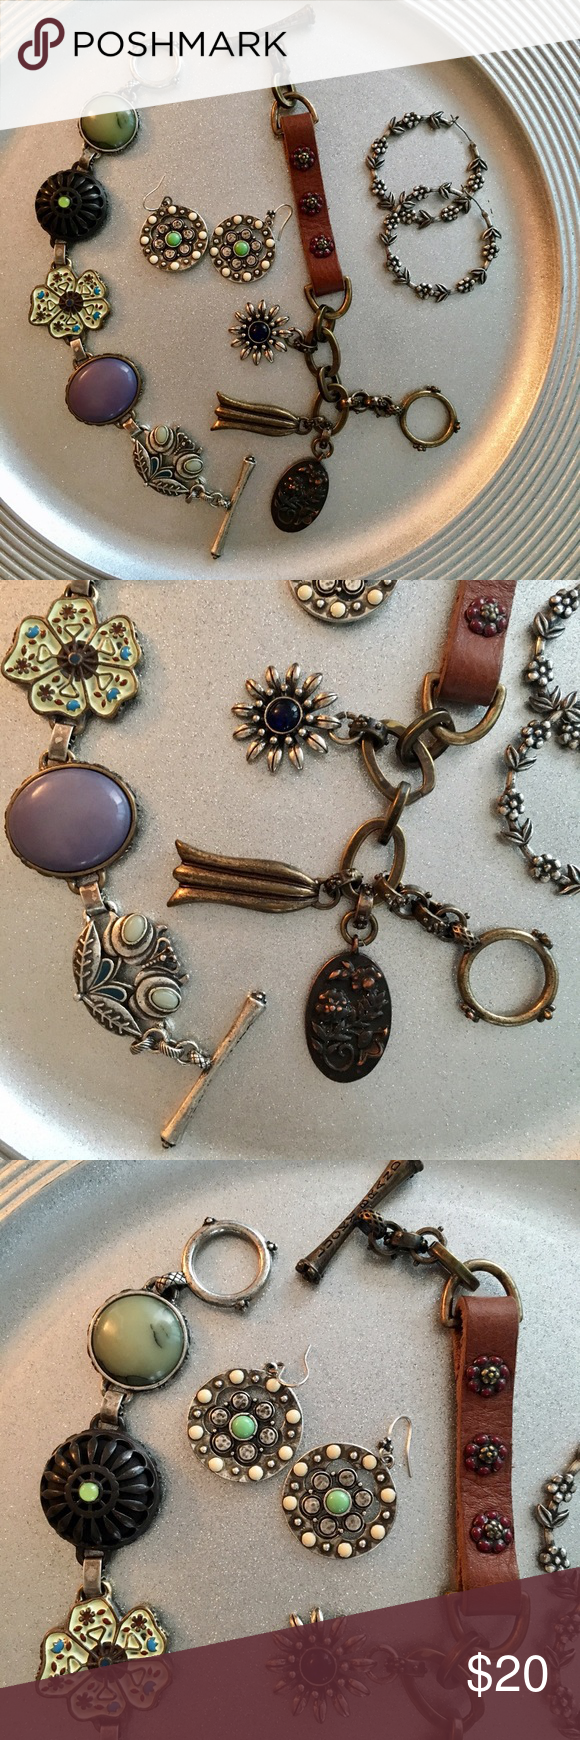 Bundle Lucky Brand Jewelry 🍀 Lucky Brand 🍀 Genuine 🍀 Two toggle bracelets , one in leathers and antique metal elements, one with set with beautiful stones, & two pairs of earrings. Perfect condition. Bohemian Chic!! Lucky Brand Jewelry Bracelets